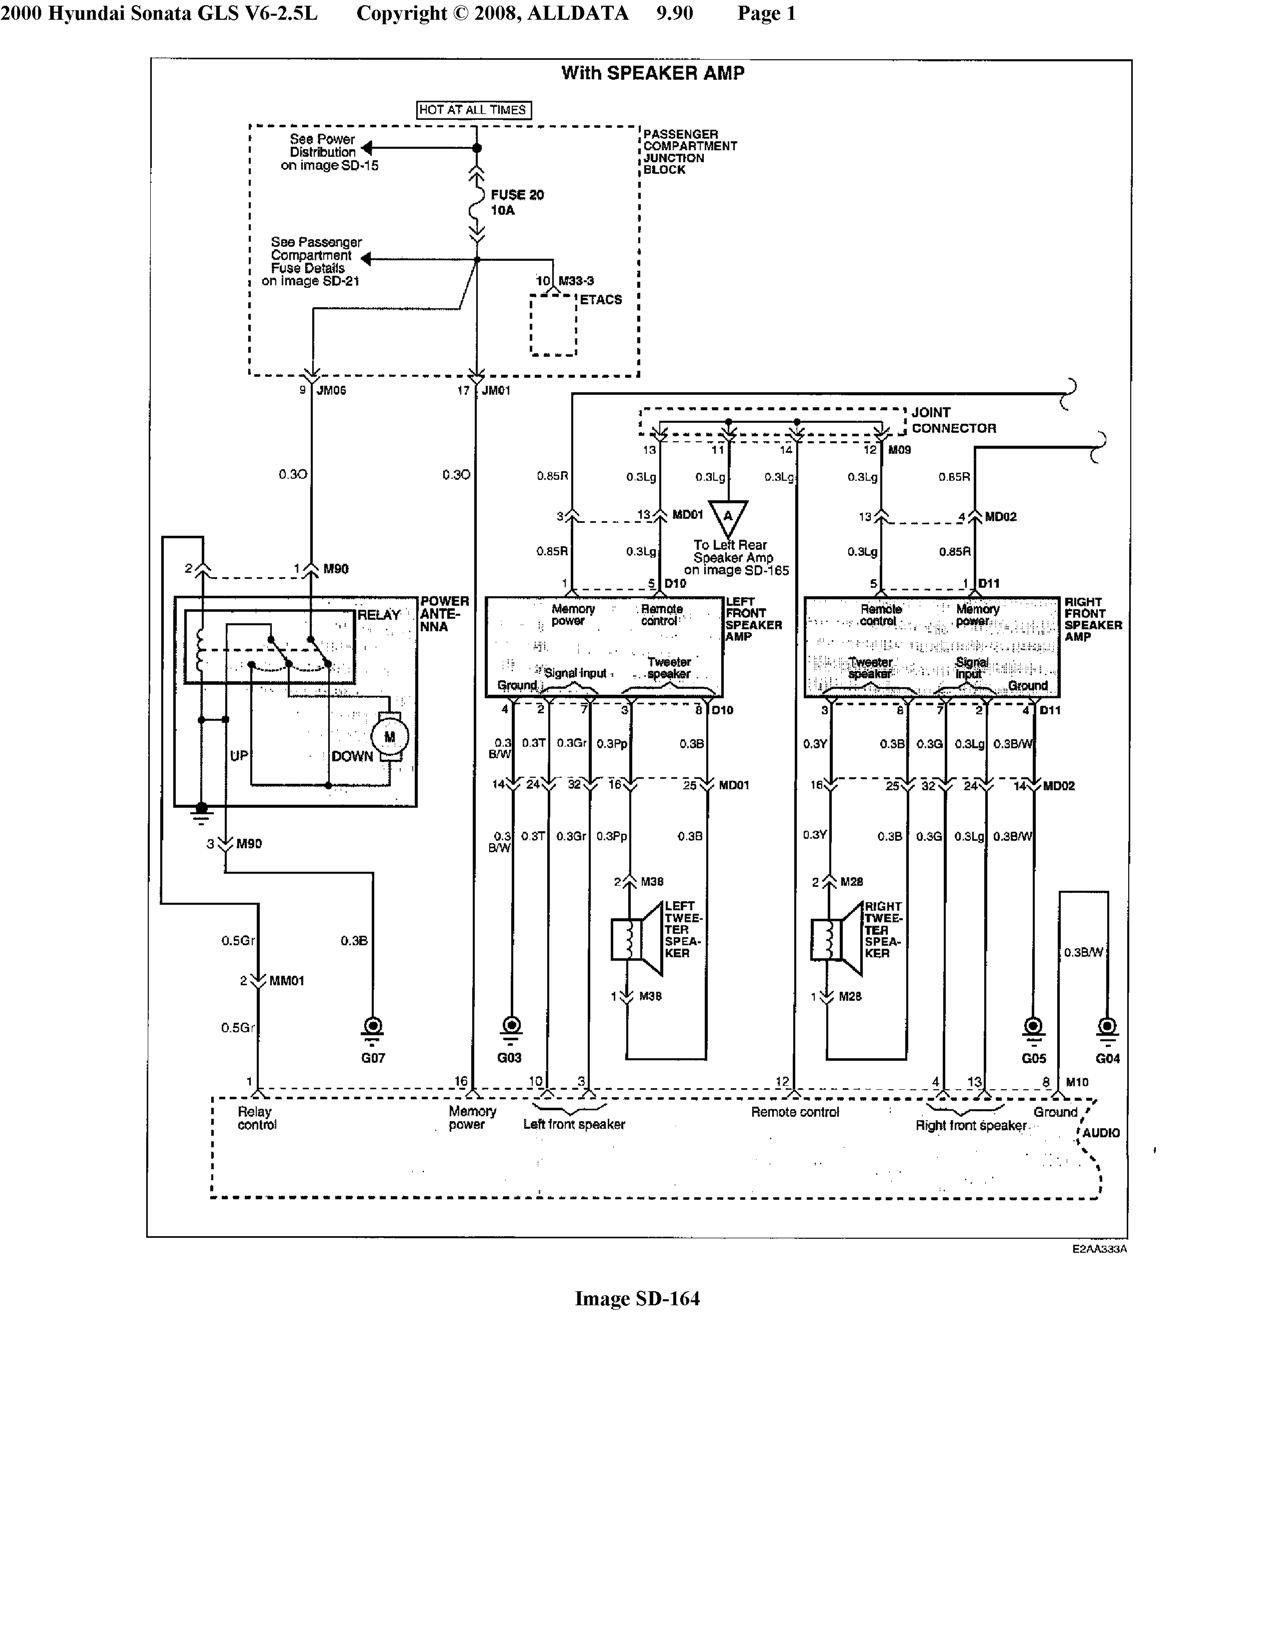 2000 Hyundai Elantra Engine Diagram Hyundai Elantra Wire Harness Diagram Hyundai Wiring Diagrams Of 2000 Hyundai Elantra Engine Diagram